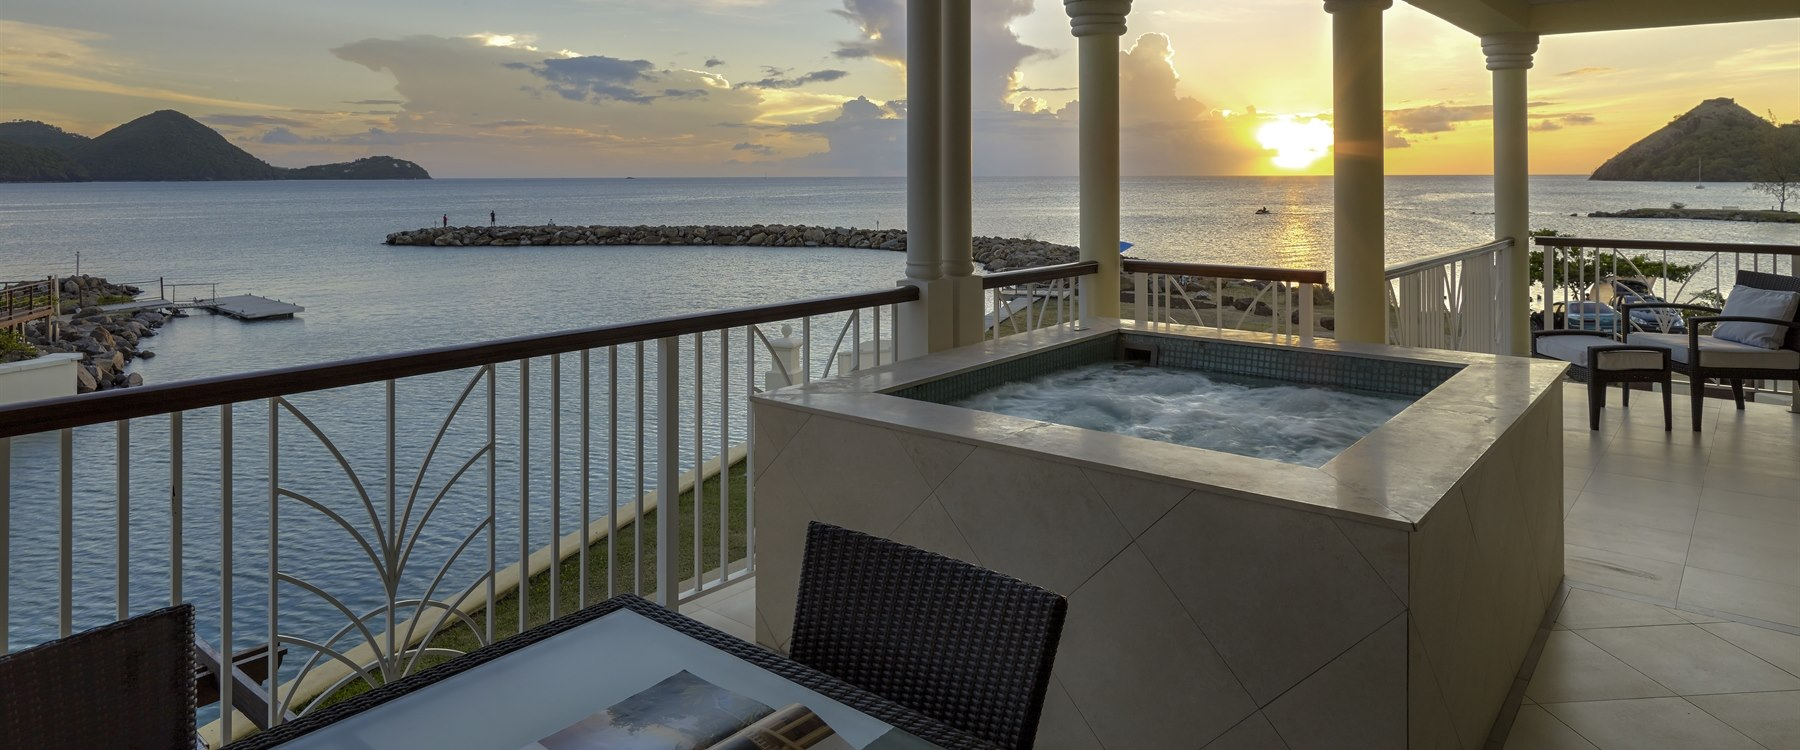 Ocean View Villa Suite with Plunge Pool at The Landings Resort and Spa by Elegant Hotels